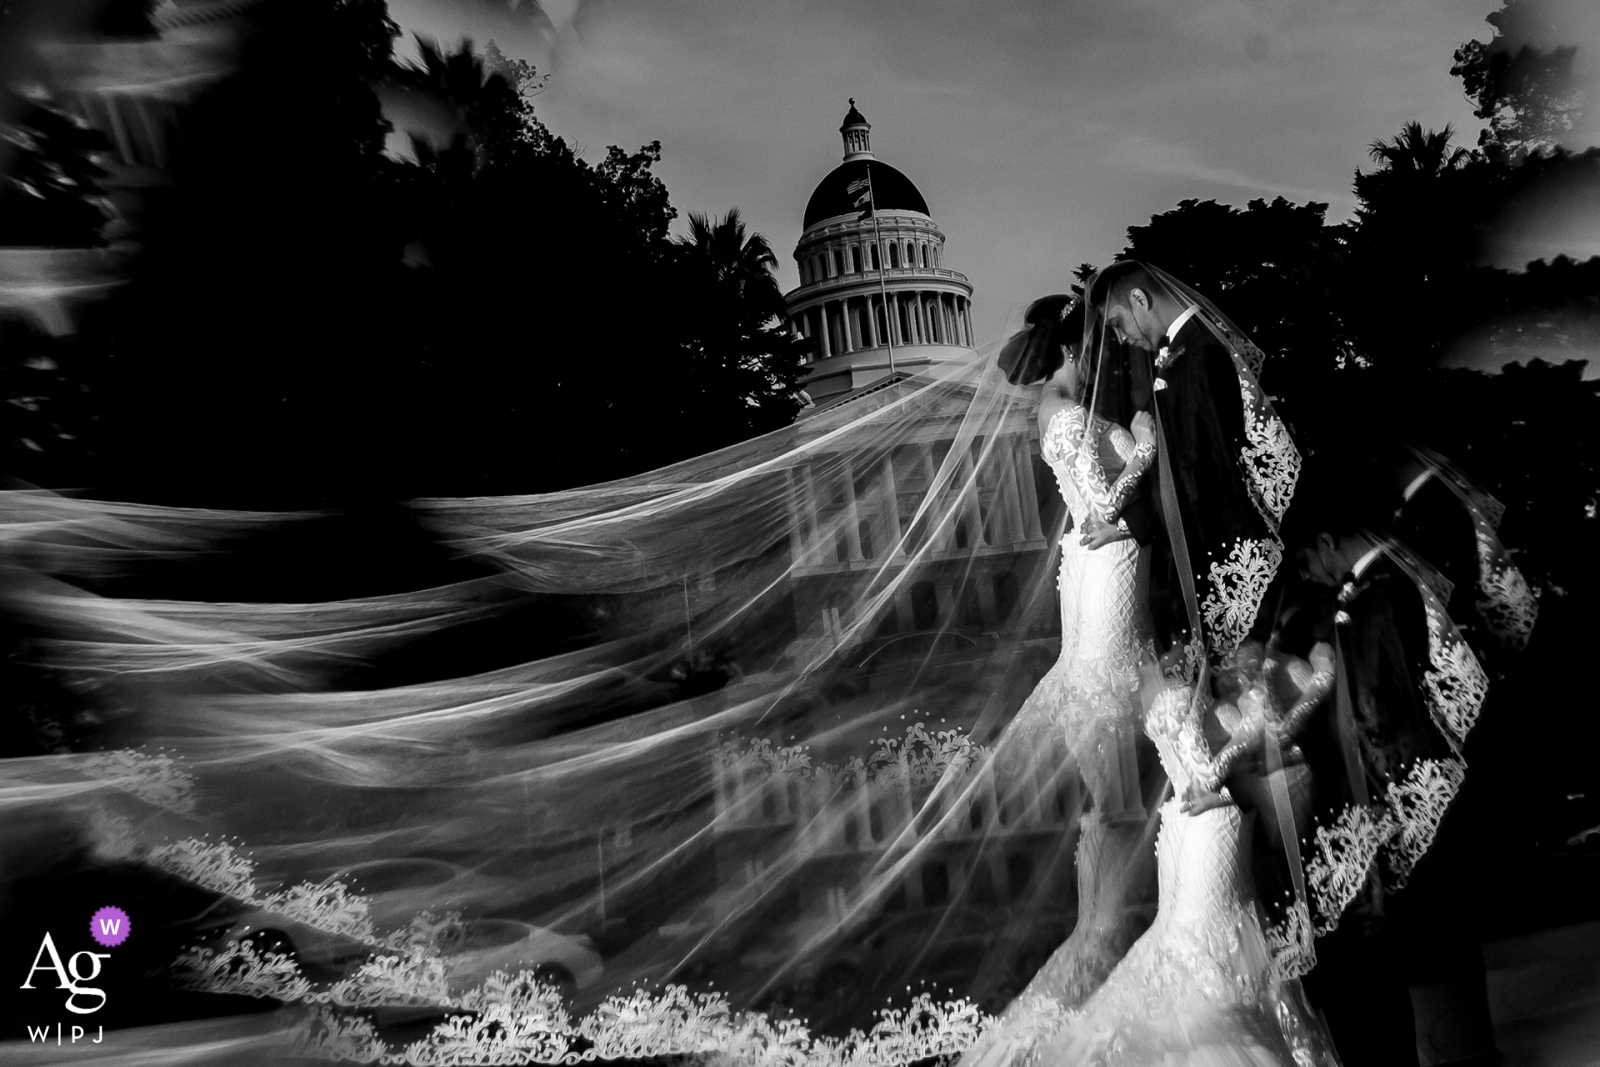 The bride has her veil fanned out in the air for this portrait with her husband in San Francisco after their wedding ceremony